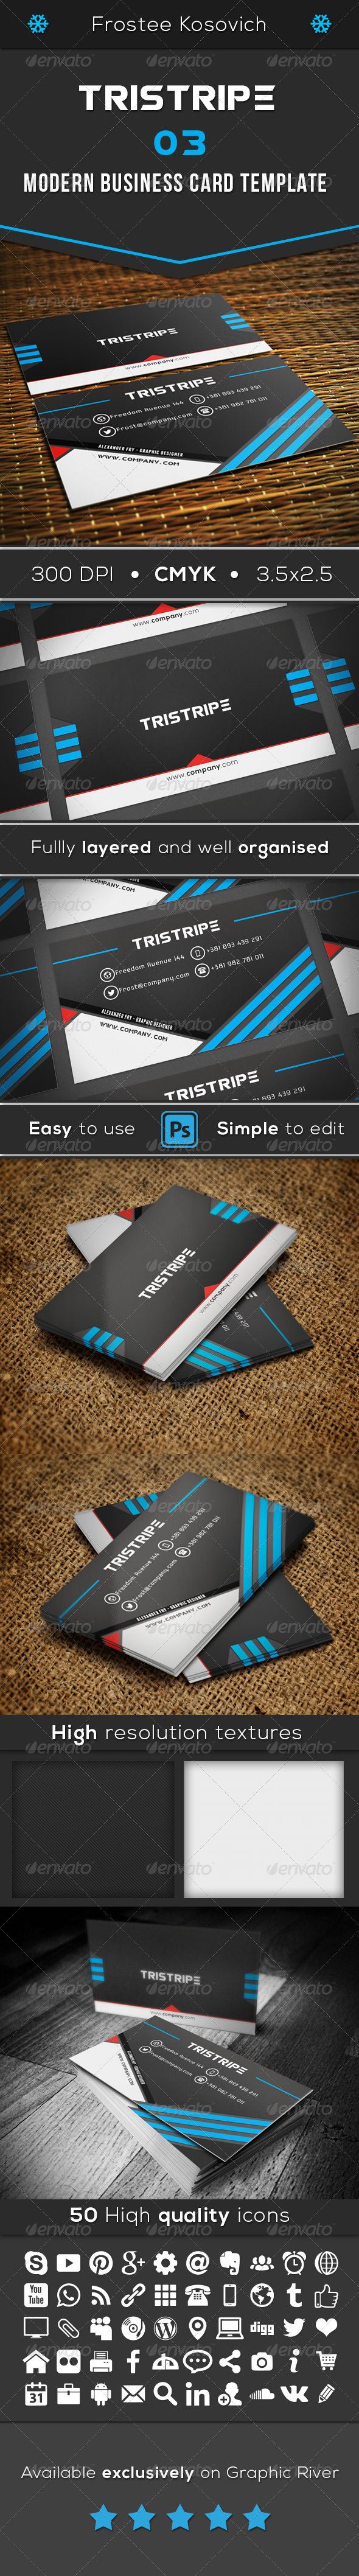 GraphicRiver Tristipe Modern Business Card Template 03 8561109